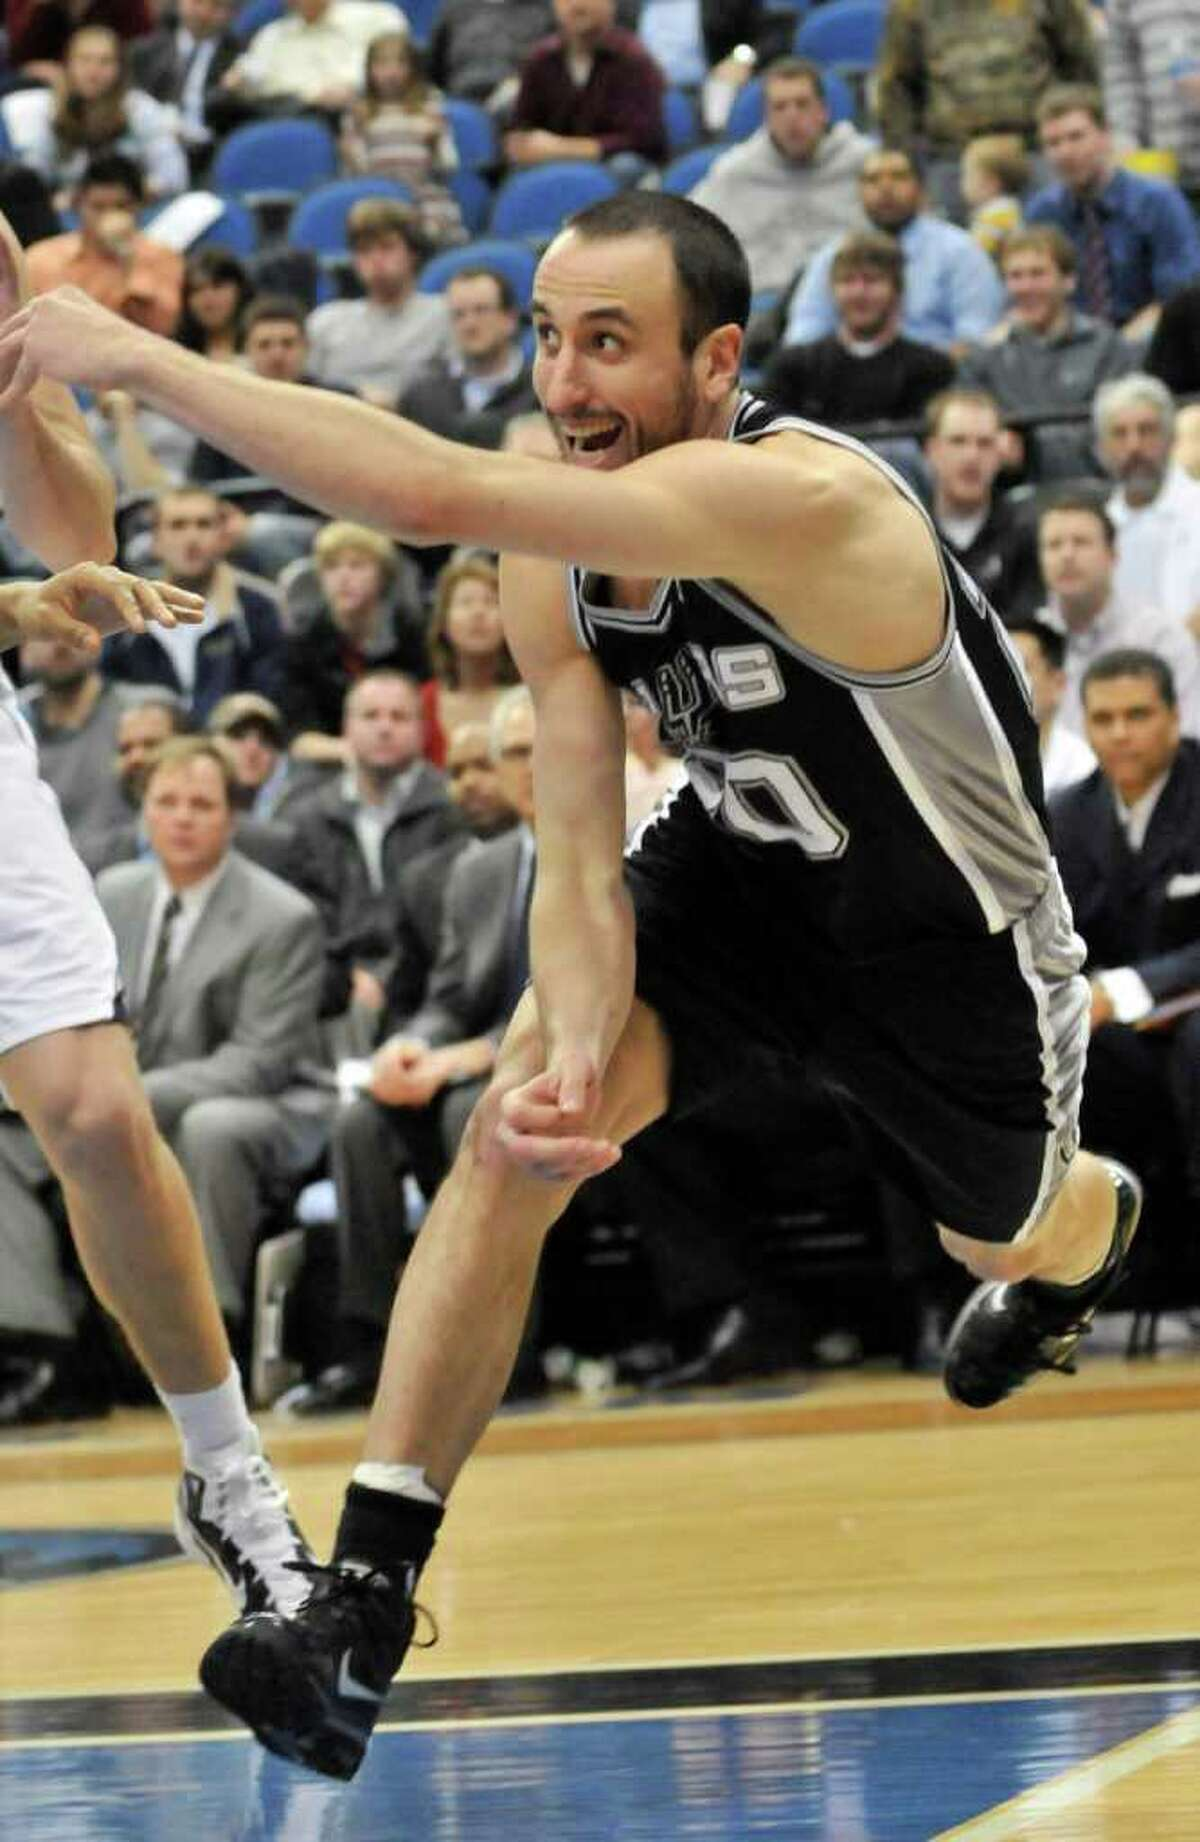 San Antonio Spurs' Manu Ginobili watches his pass against the Minnesota Timberwolves during the second half of an NBA basketball game Tuesday, Jan. 11, 2011, in Minneapolis. The Spurs won 107-96. Ginobili scored 19 points.